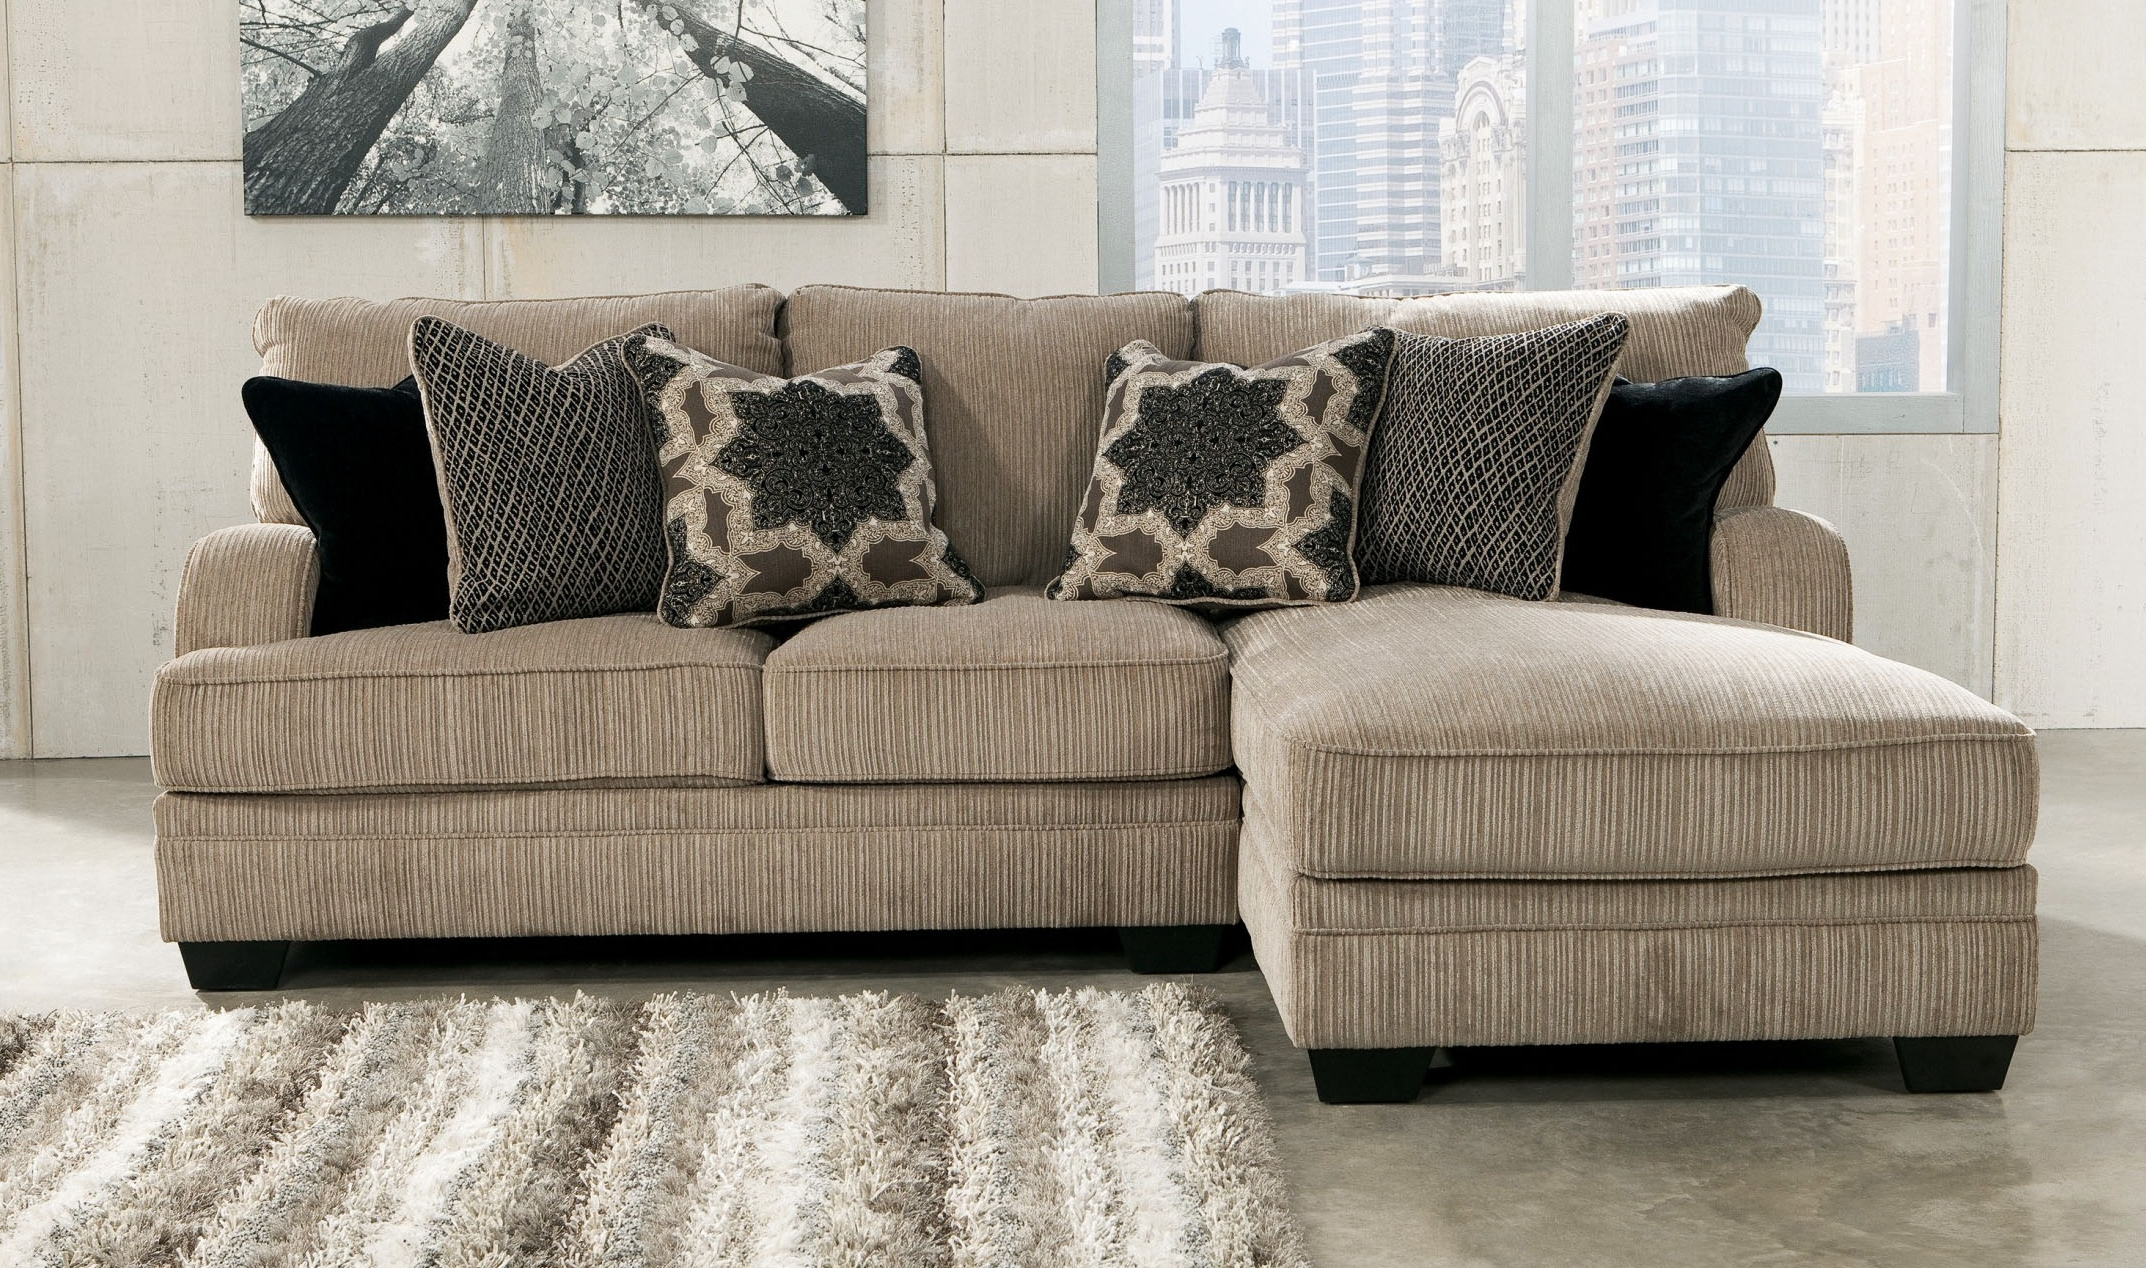 Ethan Mordden Modern Sofa Set Designs For Living Room Charcoal Intended For Well Liked Modern Sectional Sofas For Small Spaces (View 4 of 20)